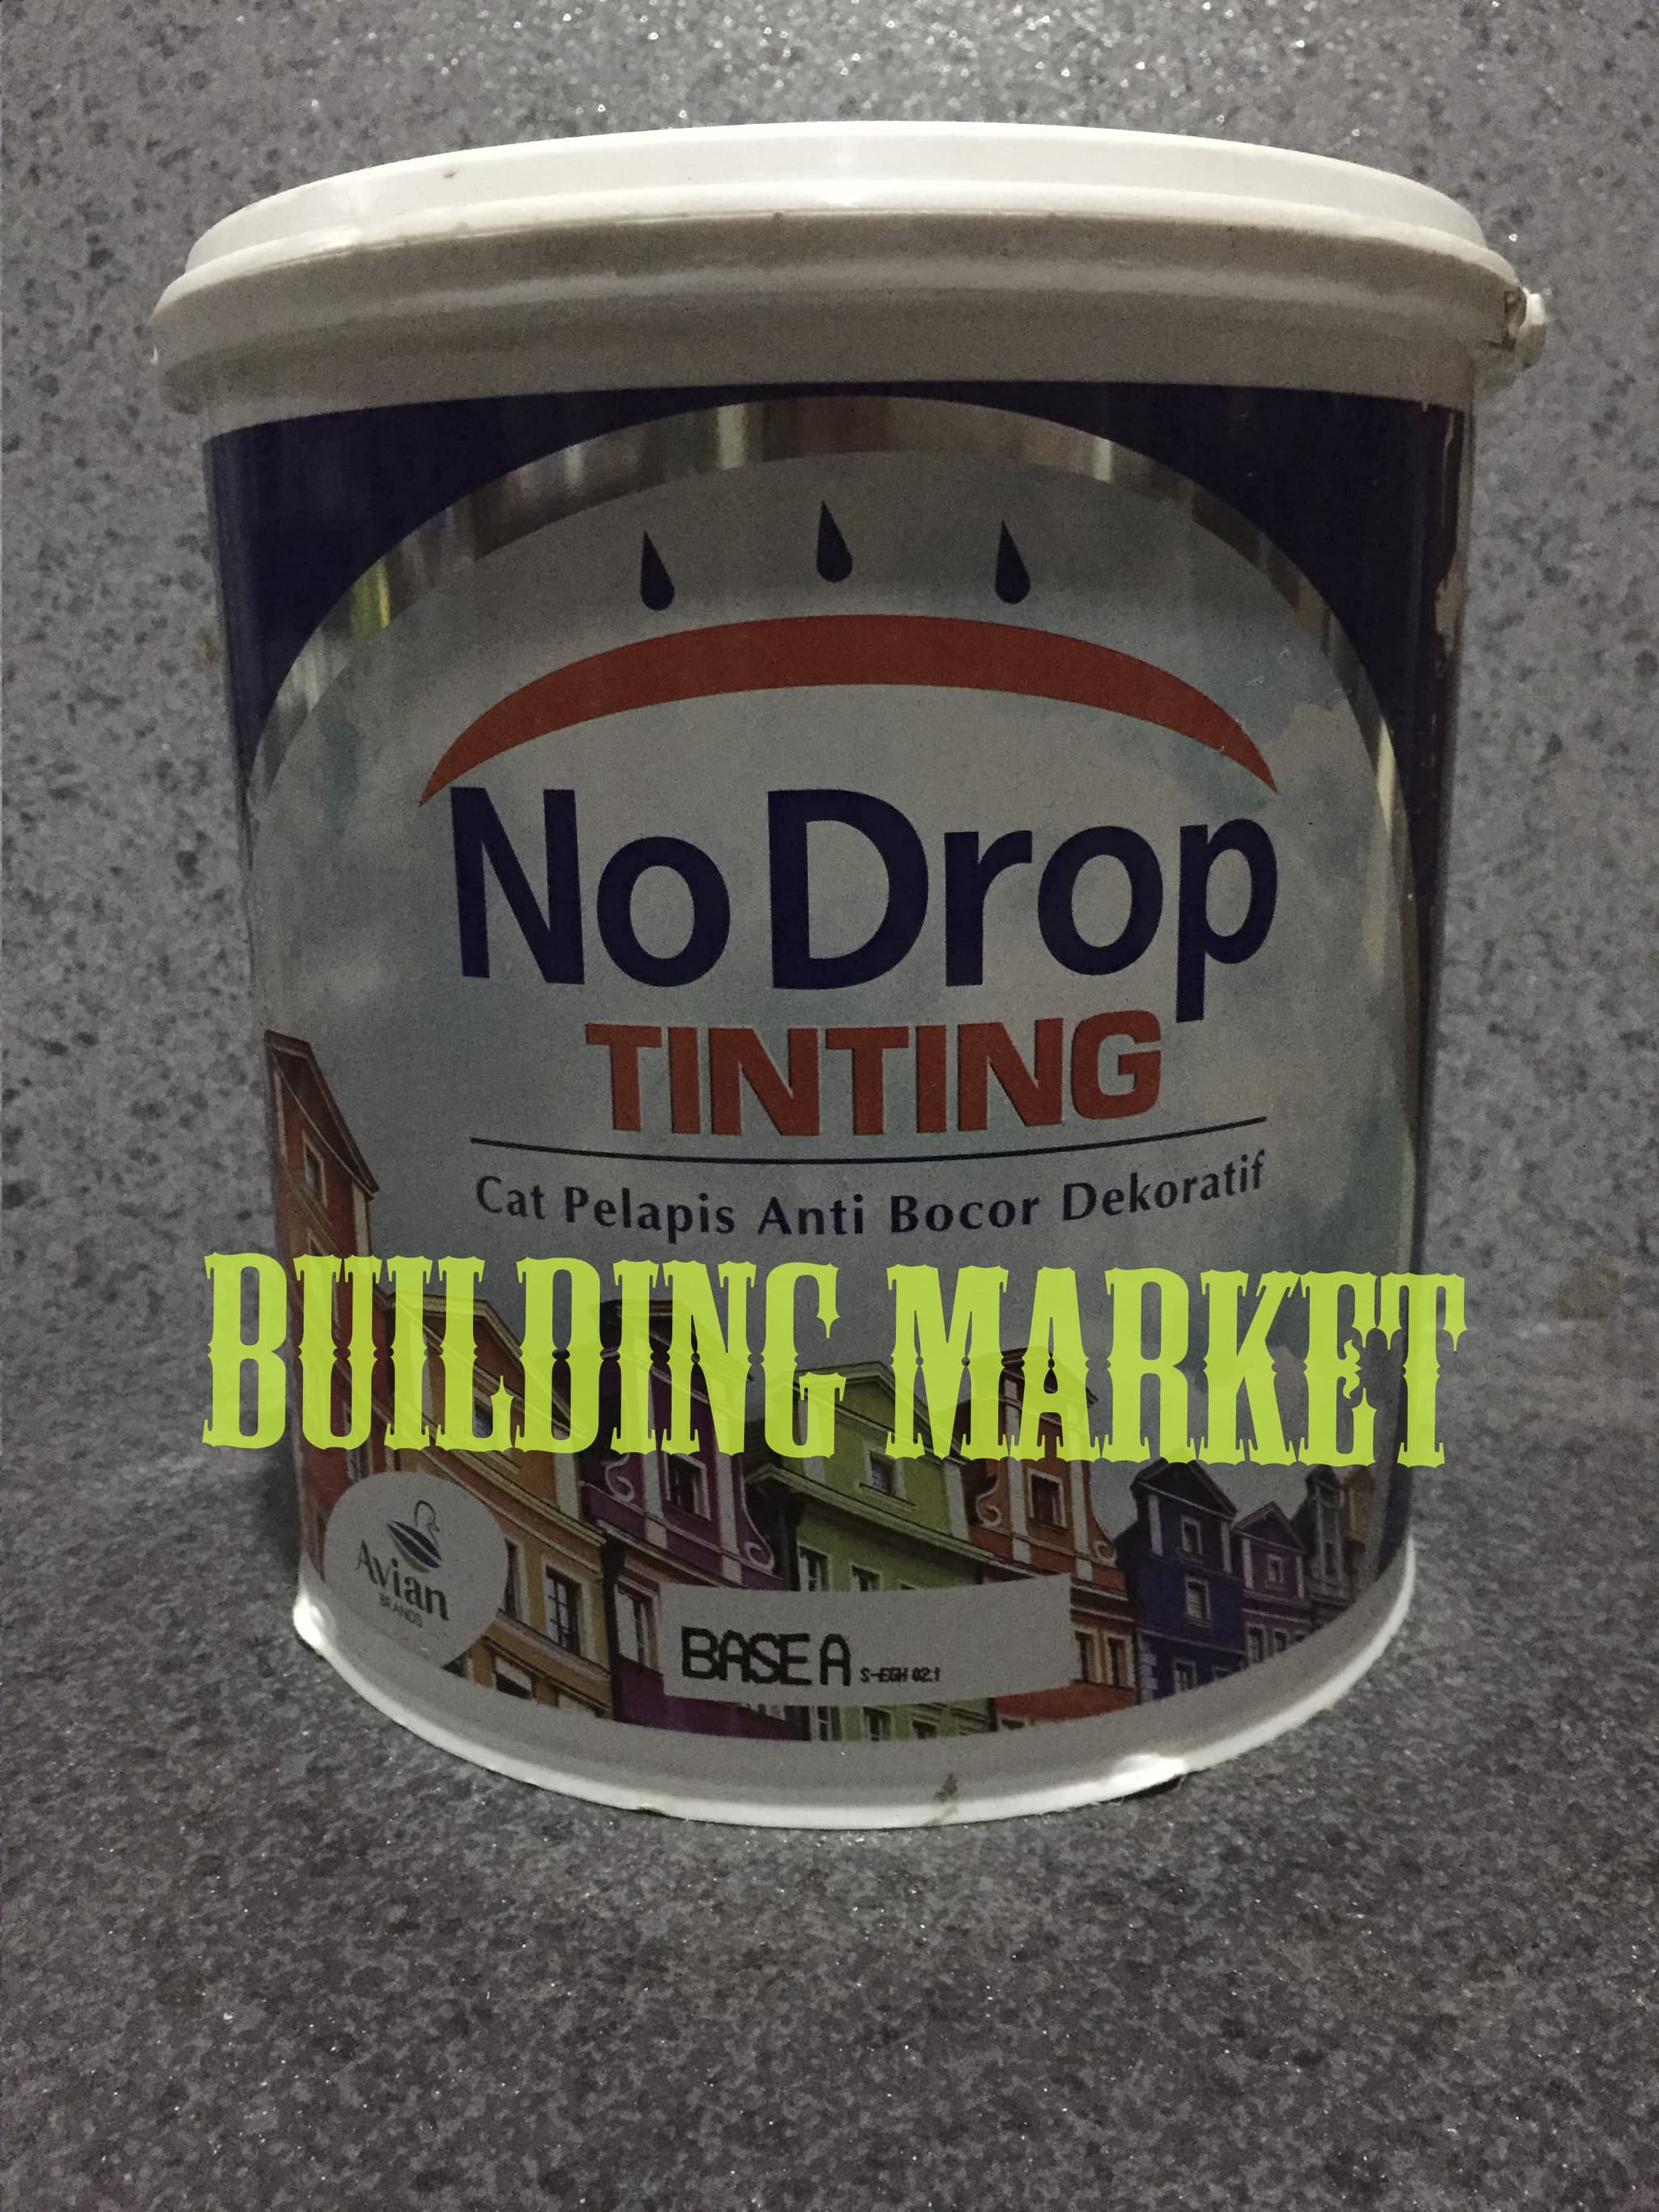 Harga Cat No Drop 2018 Jual Cat Tembok No Drop Waterproofing Tinting 4 Kg Warna Tua